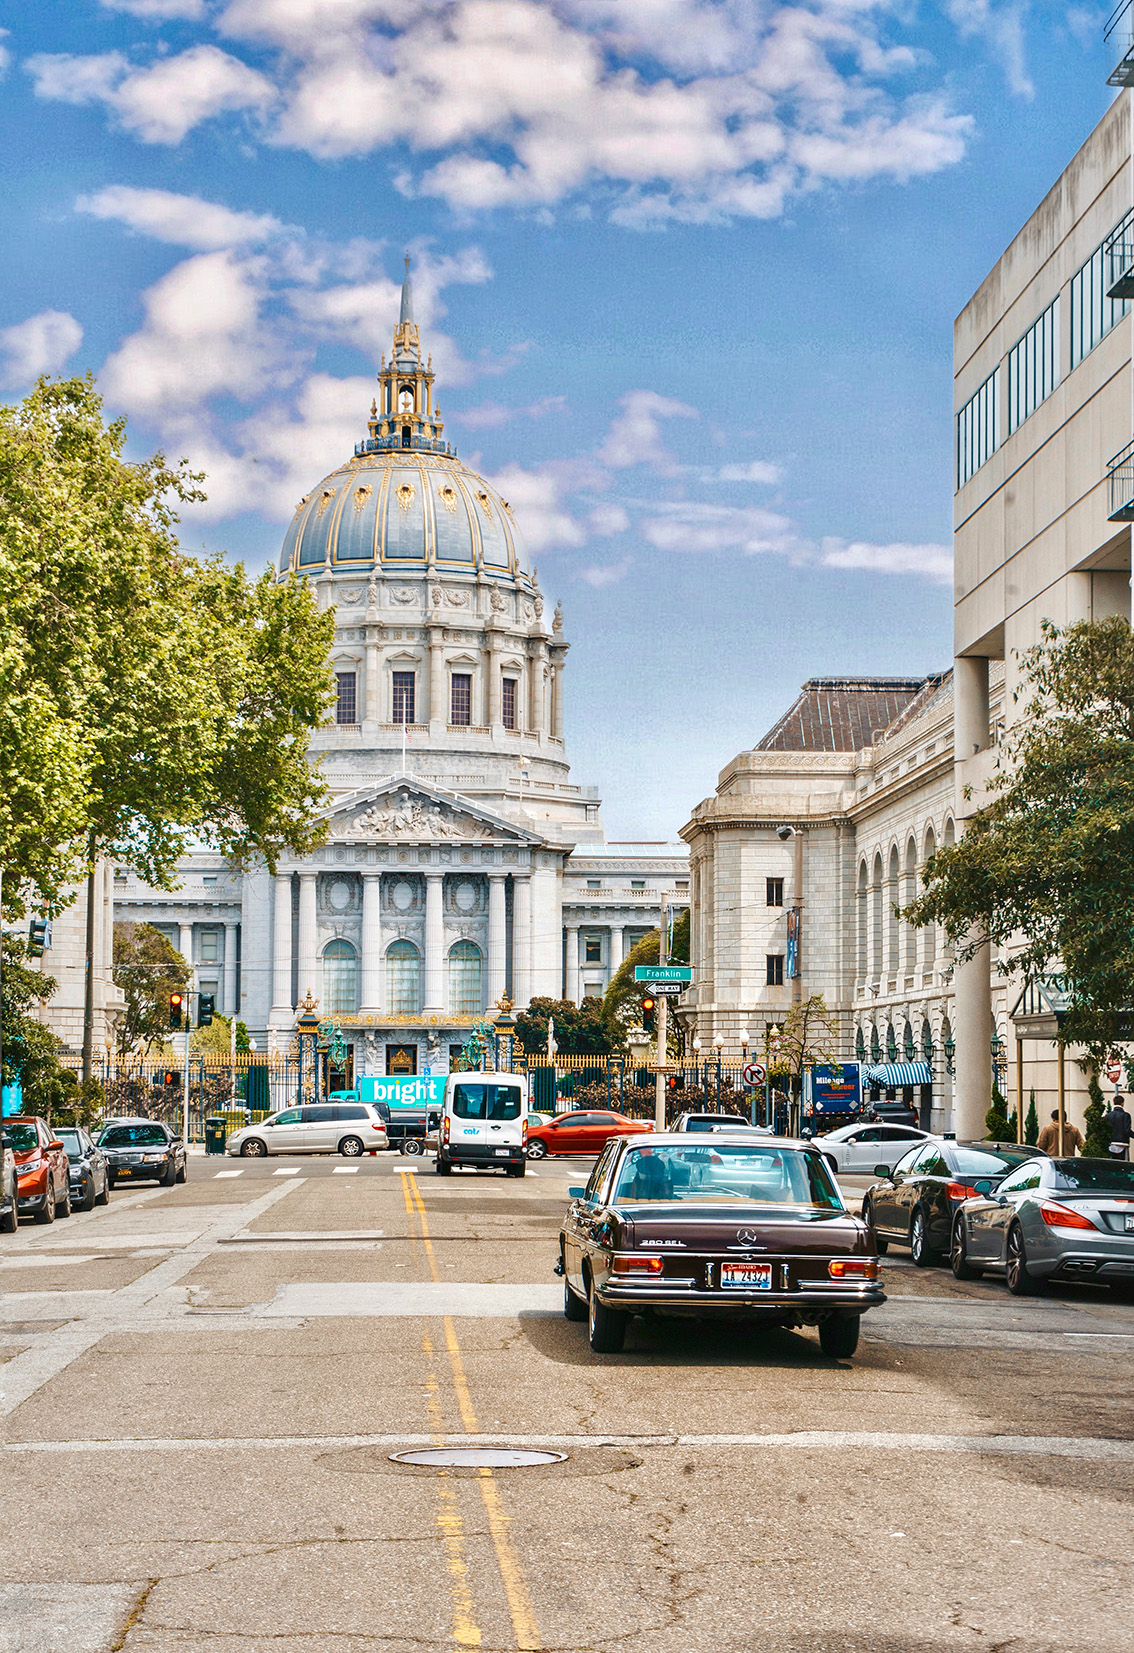 53 10 most instagrammable places in San Francisco you don't have to miss!